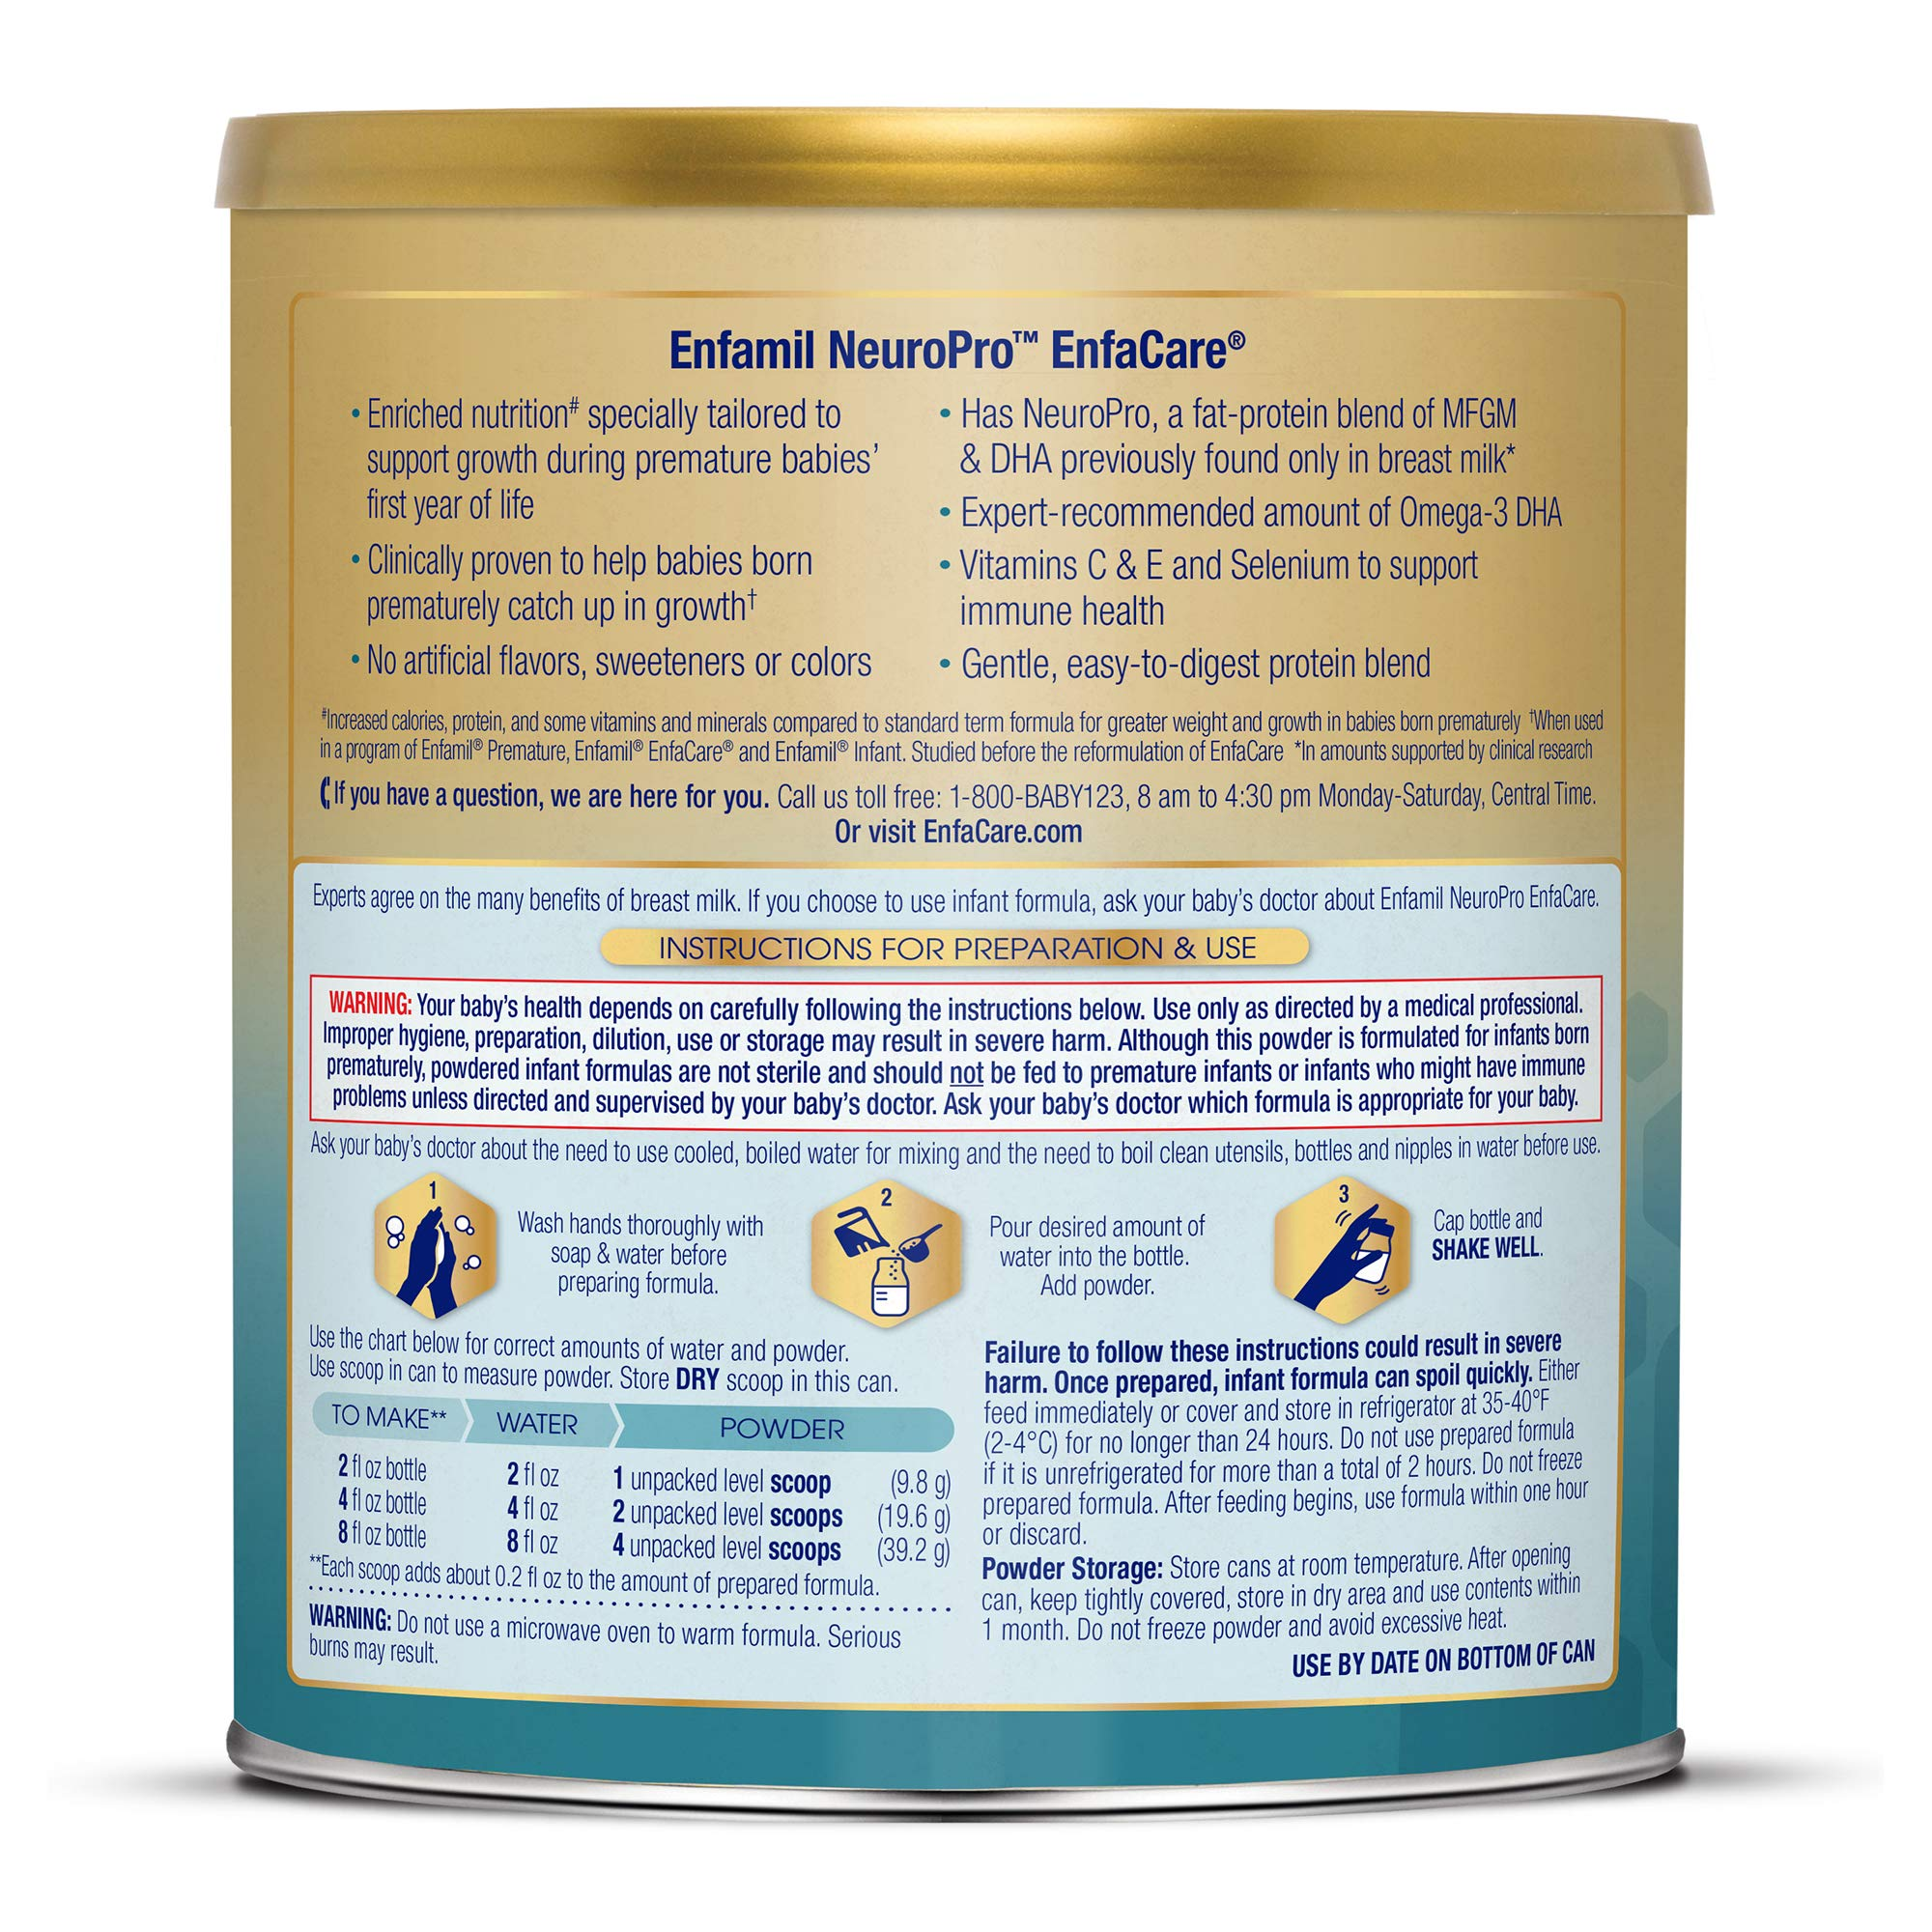 Enfamil NeuroPro EnfaCare Infant Formula - Brain Building Nutrition with Clinically Proven Growth Benefits for Premature Babies - Powder Can, 12.8 oz (Pack of 6) by Enfamil (Image #9)